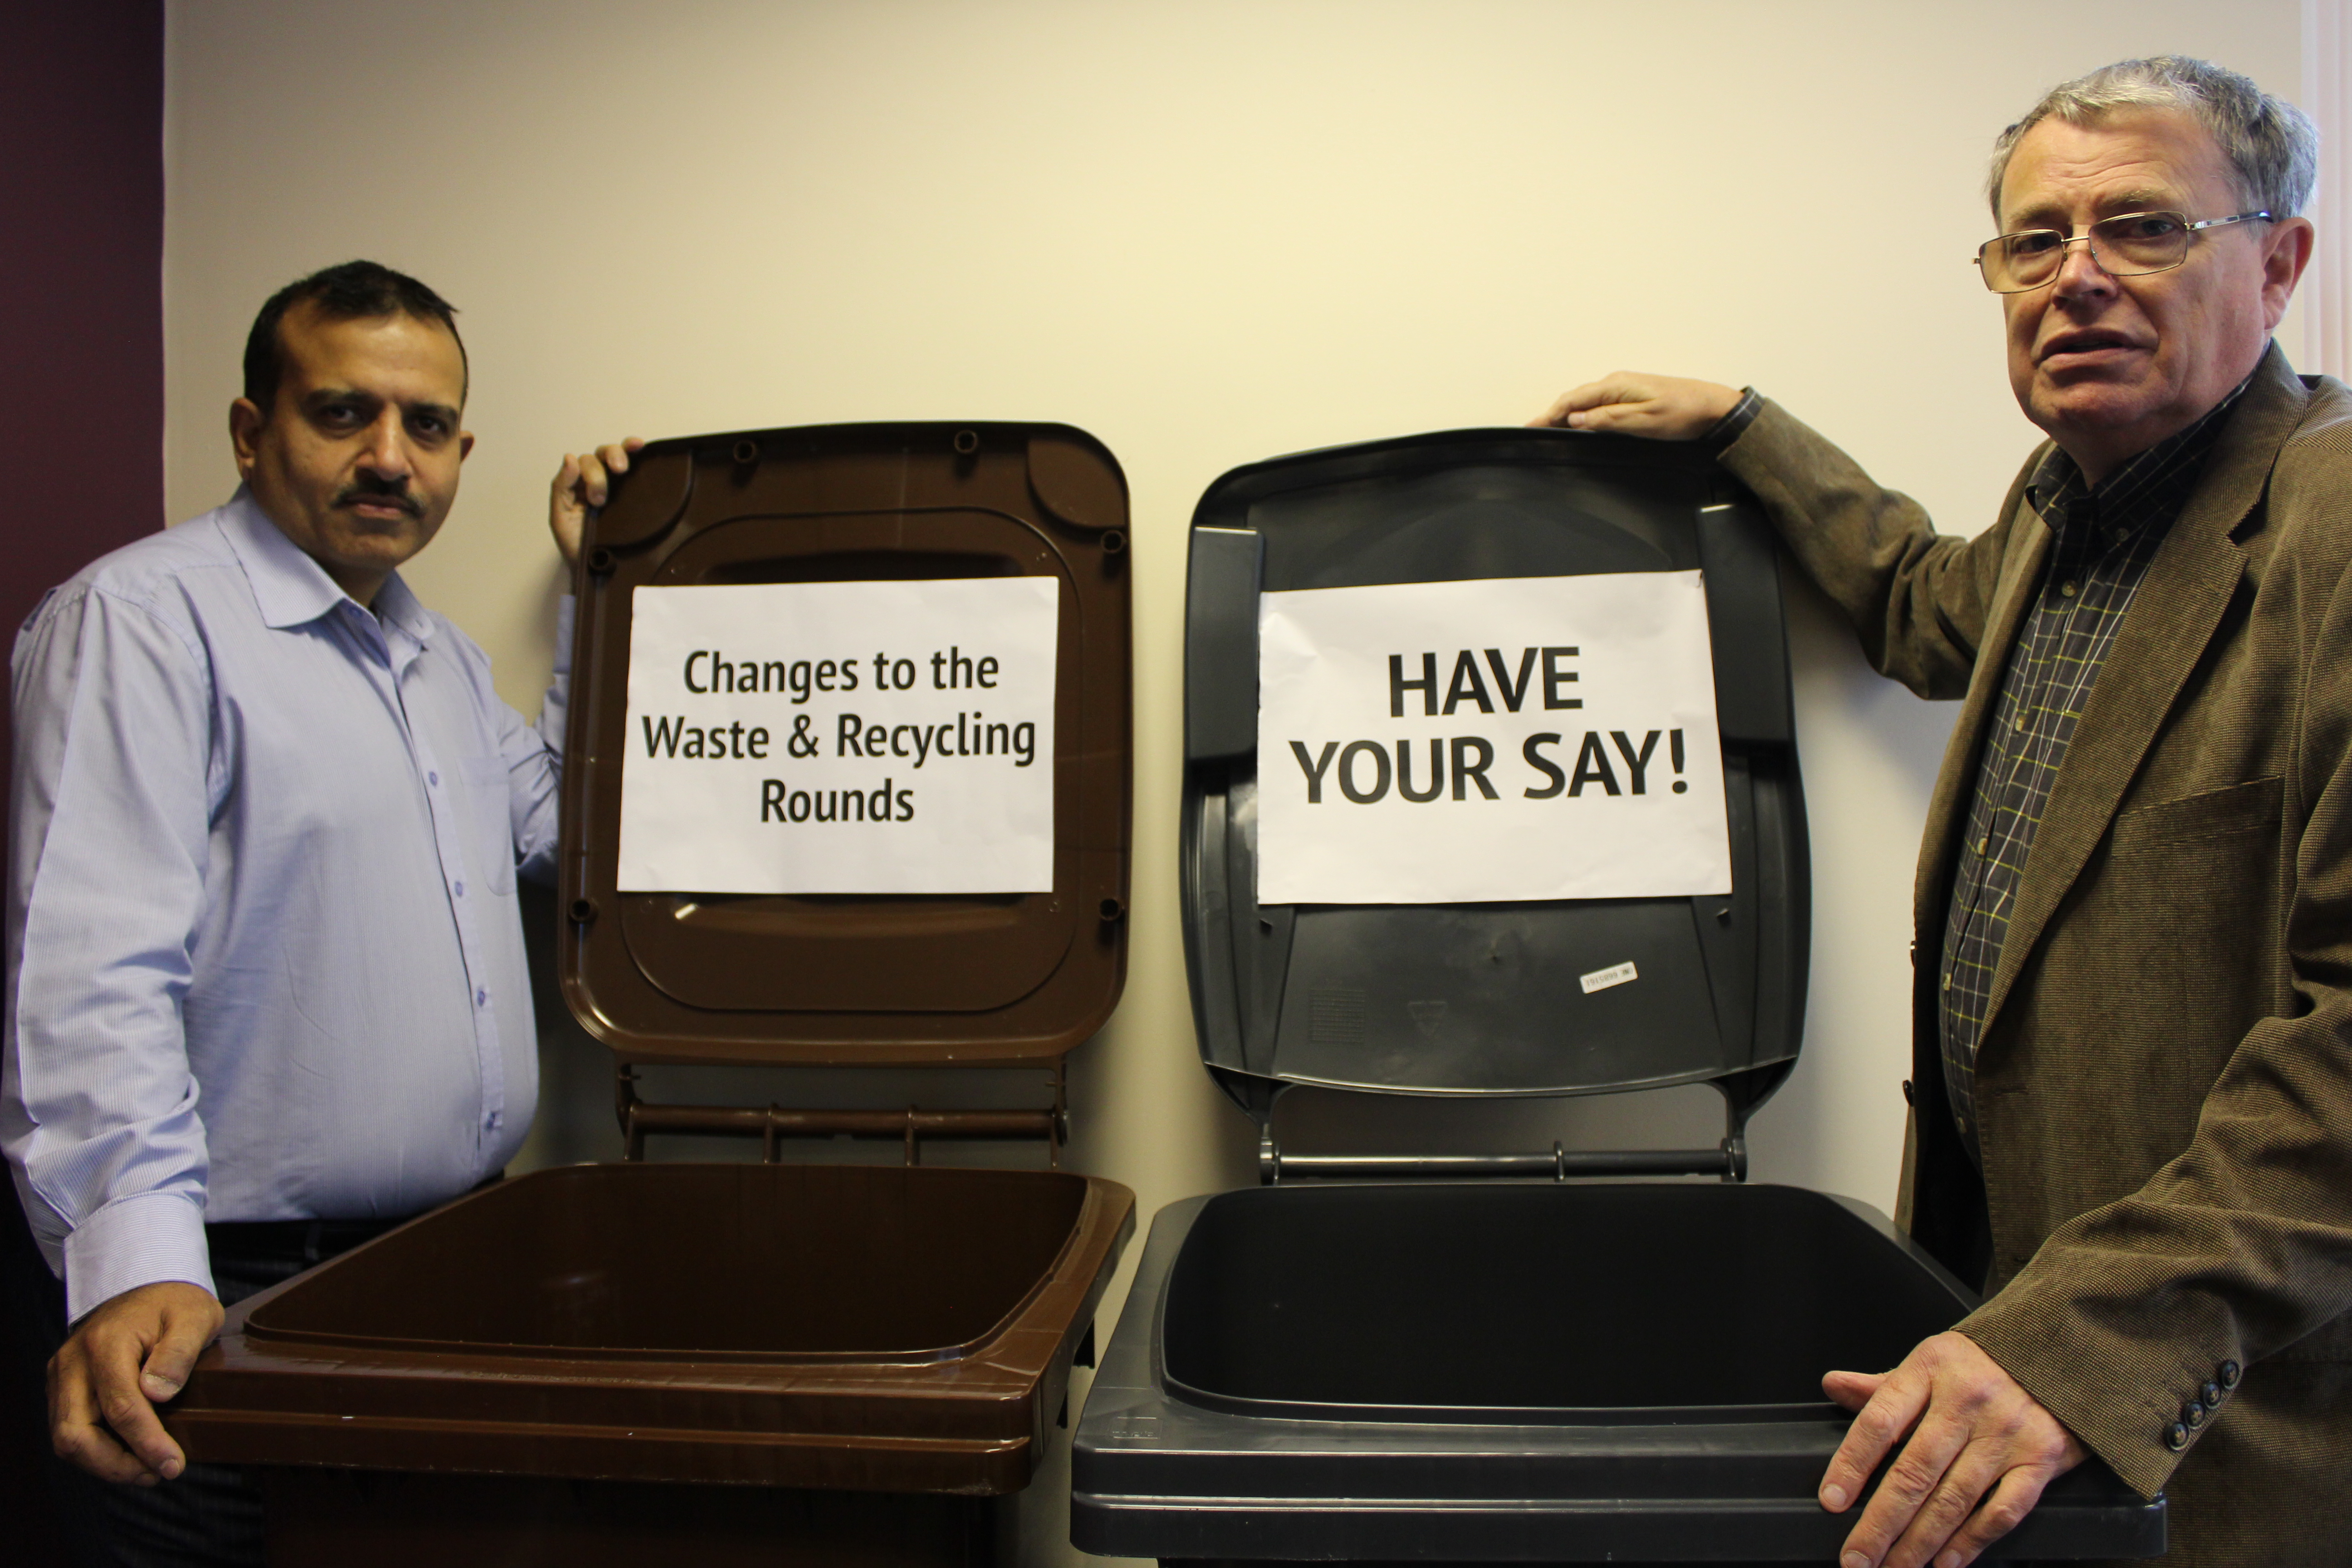 Last chance! Have your say on proposals to change refuse and recycling collections